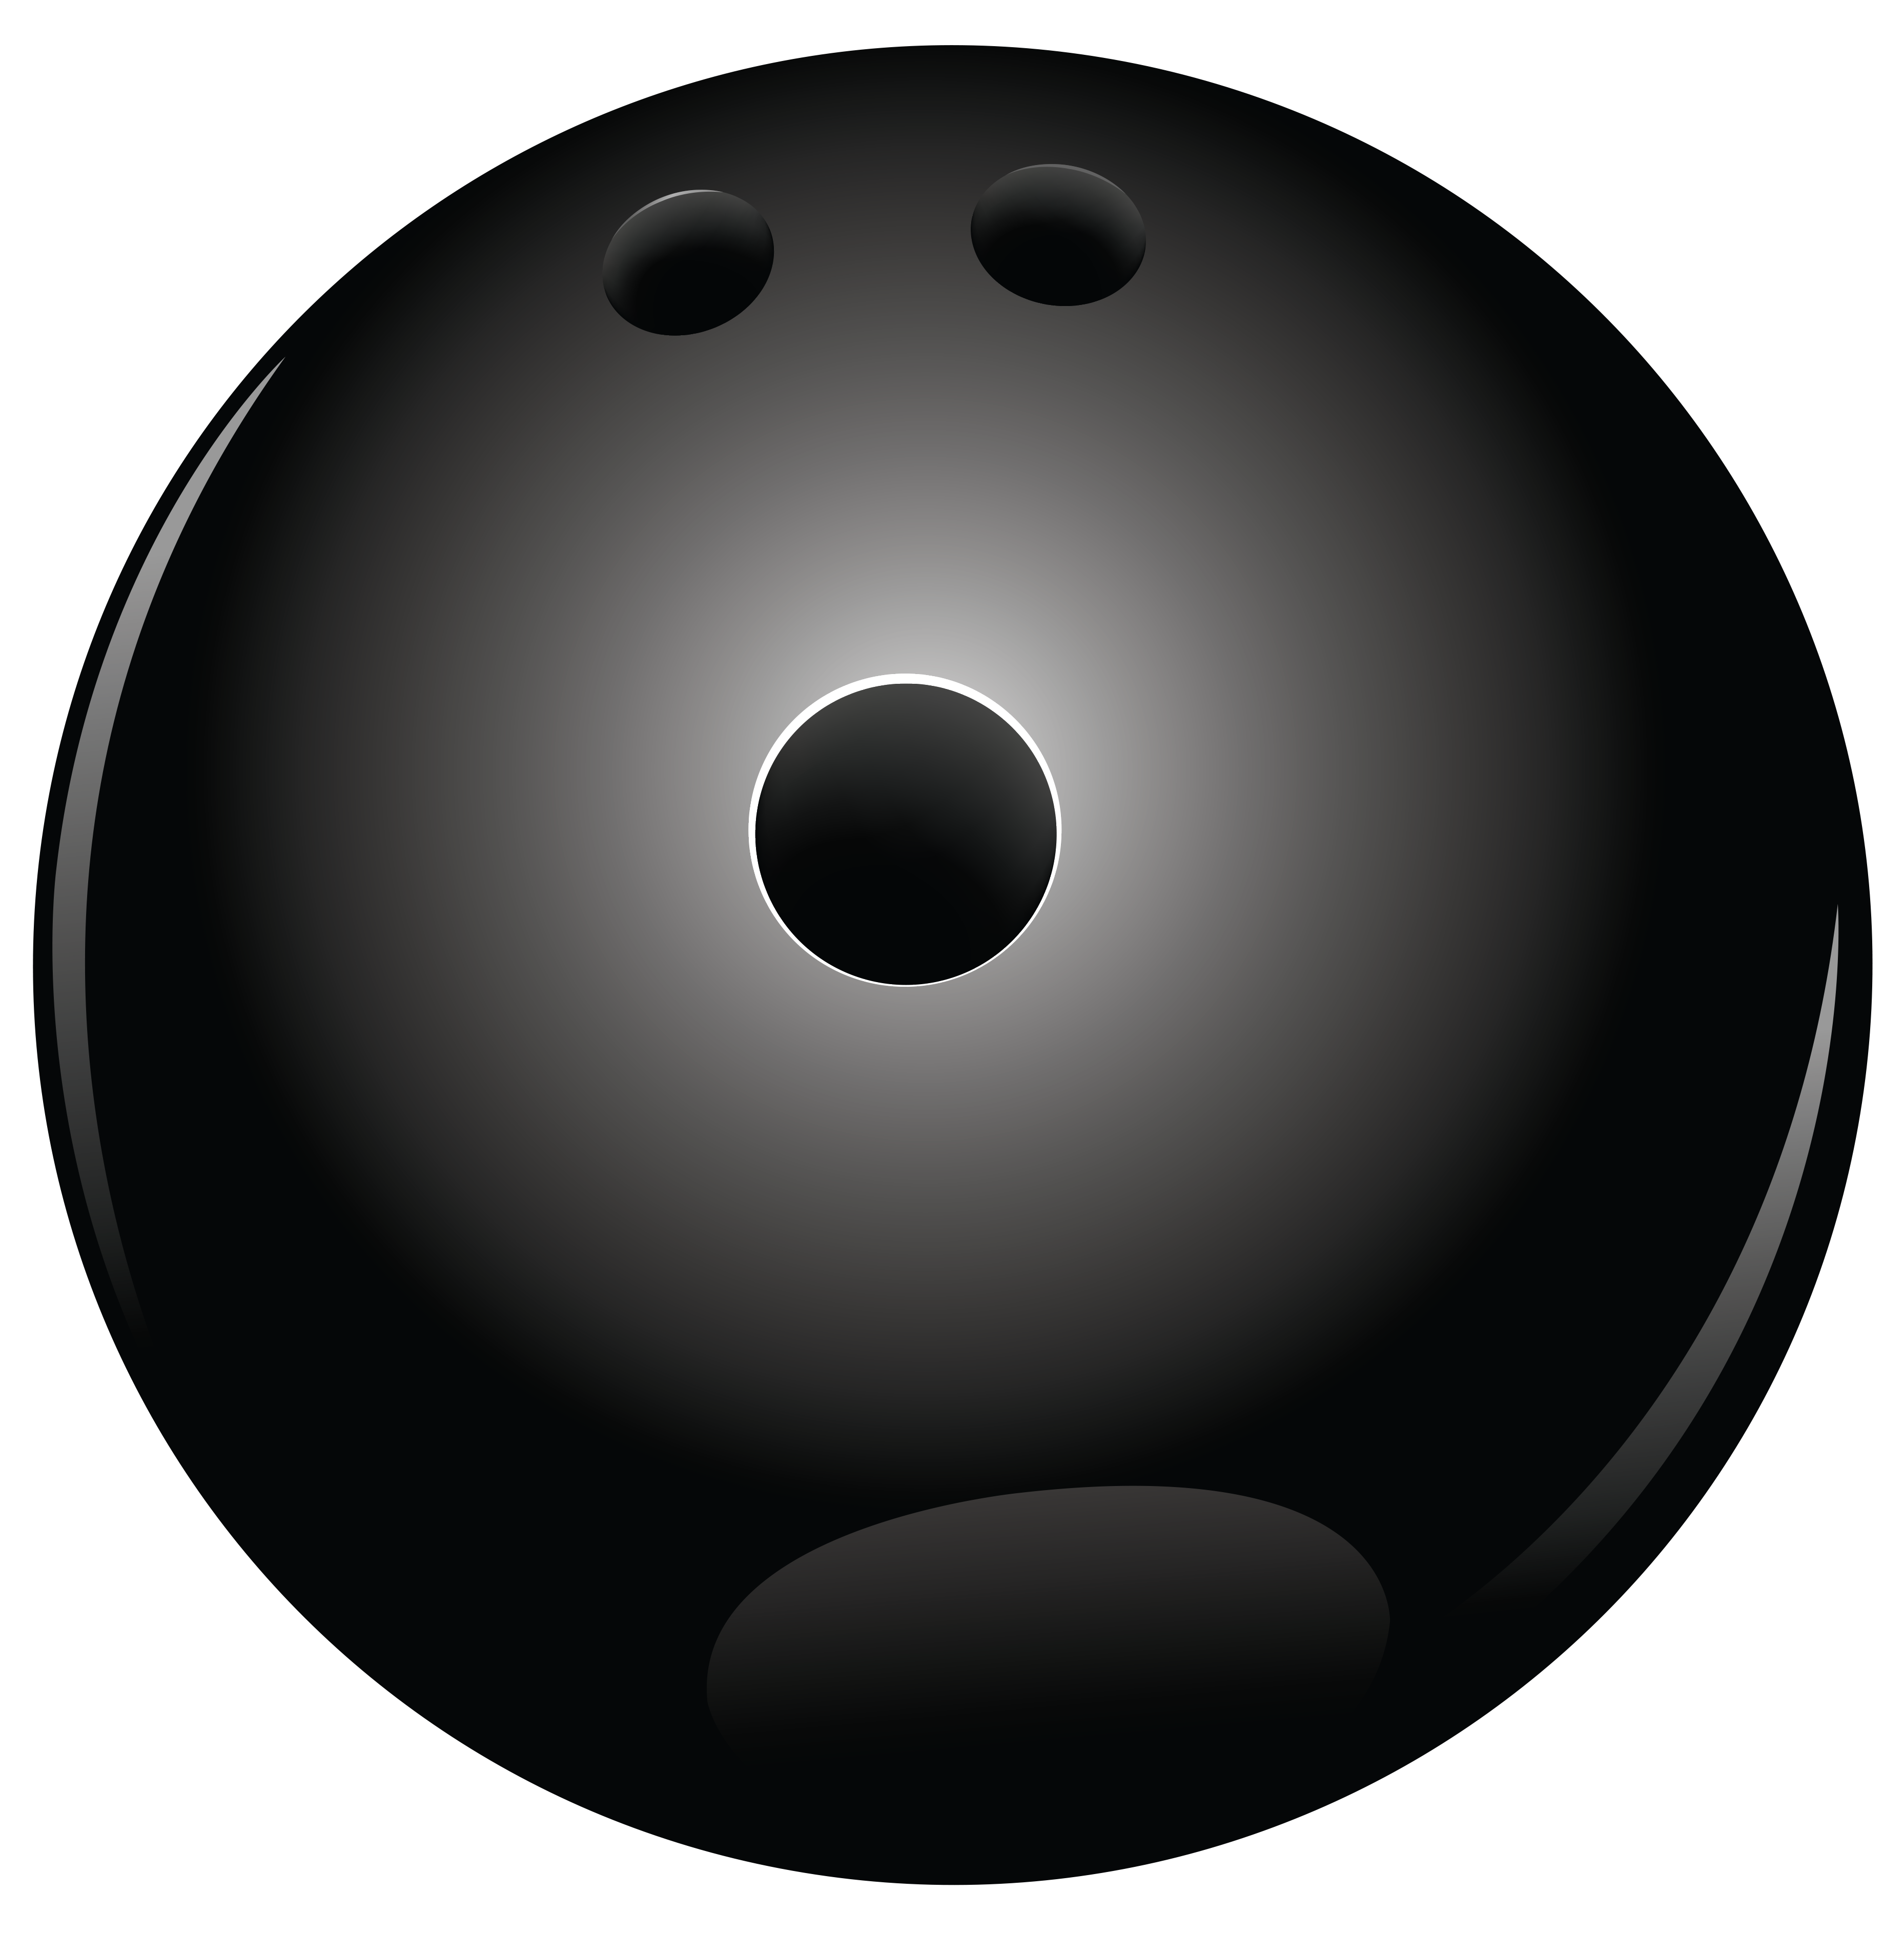 Bowling Ball Clipart & Bowling Ball Clip Art Images.